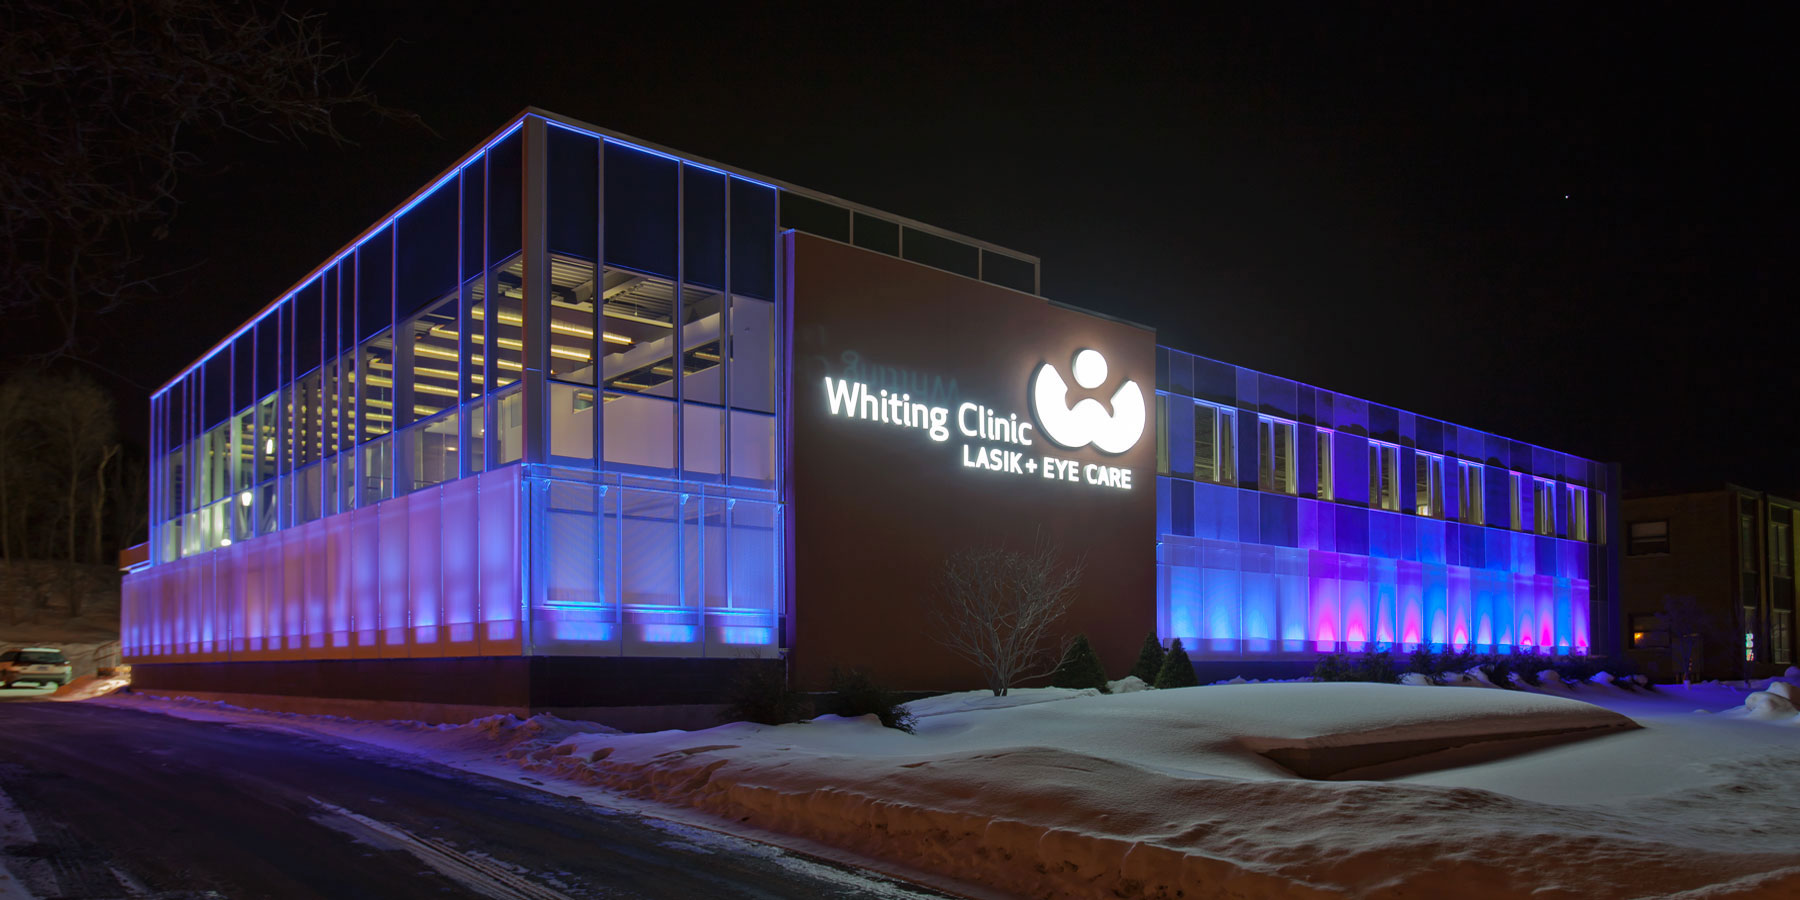 Whiting-Clinic_exterior_north_perspective.jpg